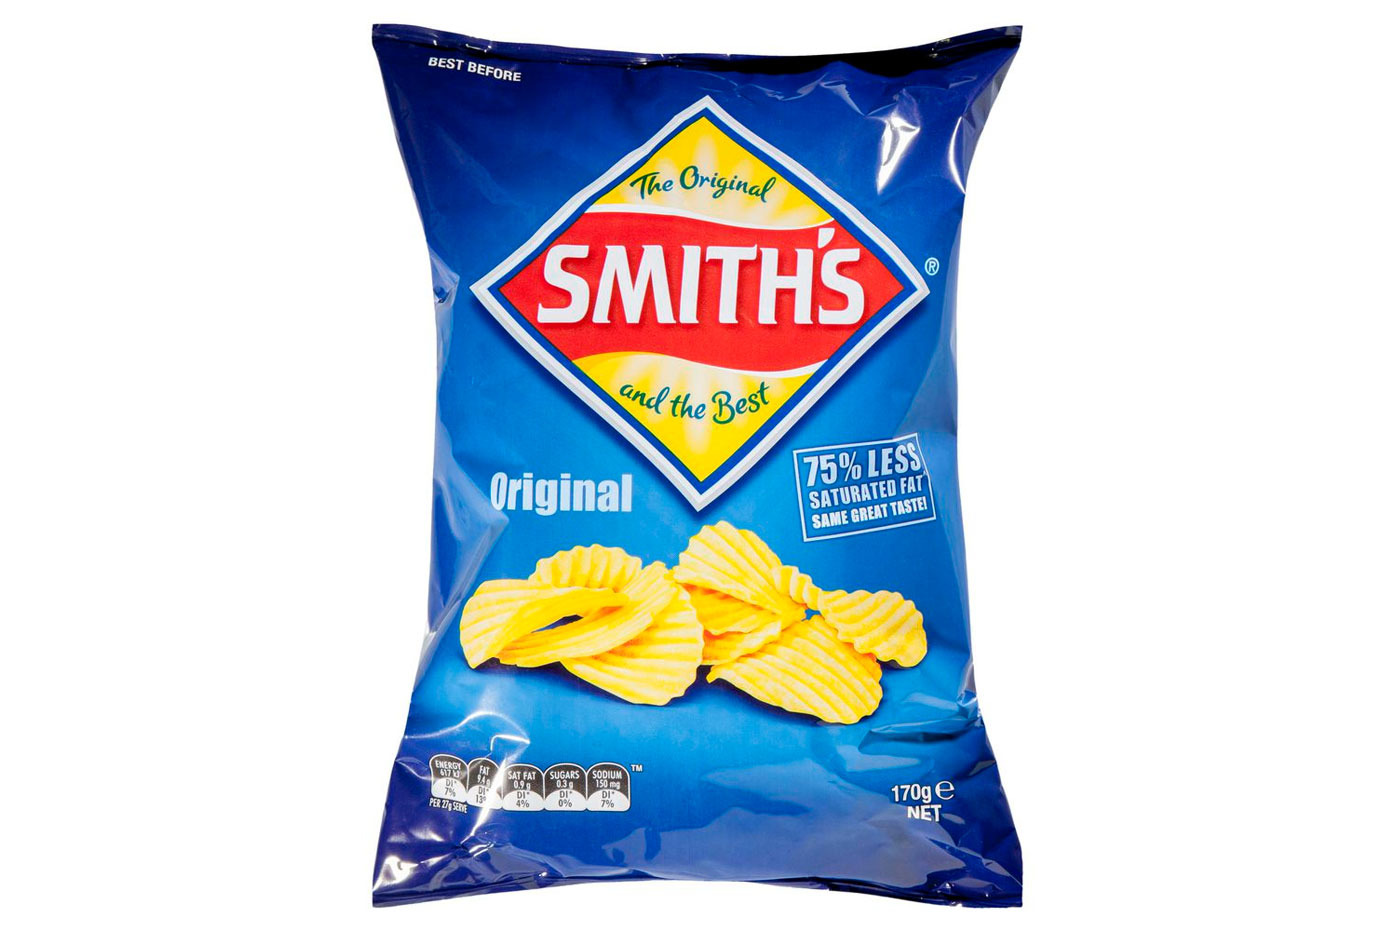 Smith's original potato chips: at least 617kj/147 calories